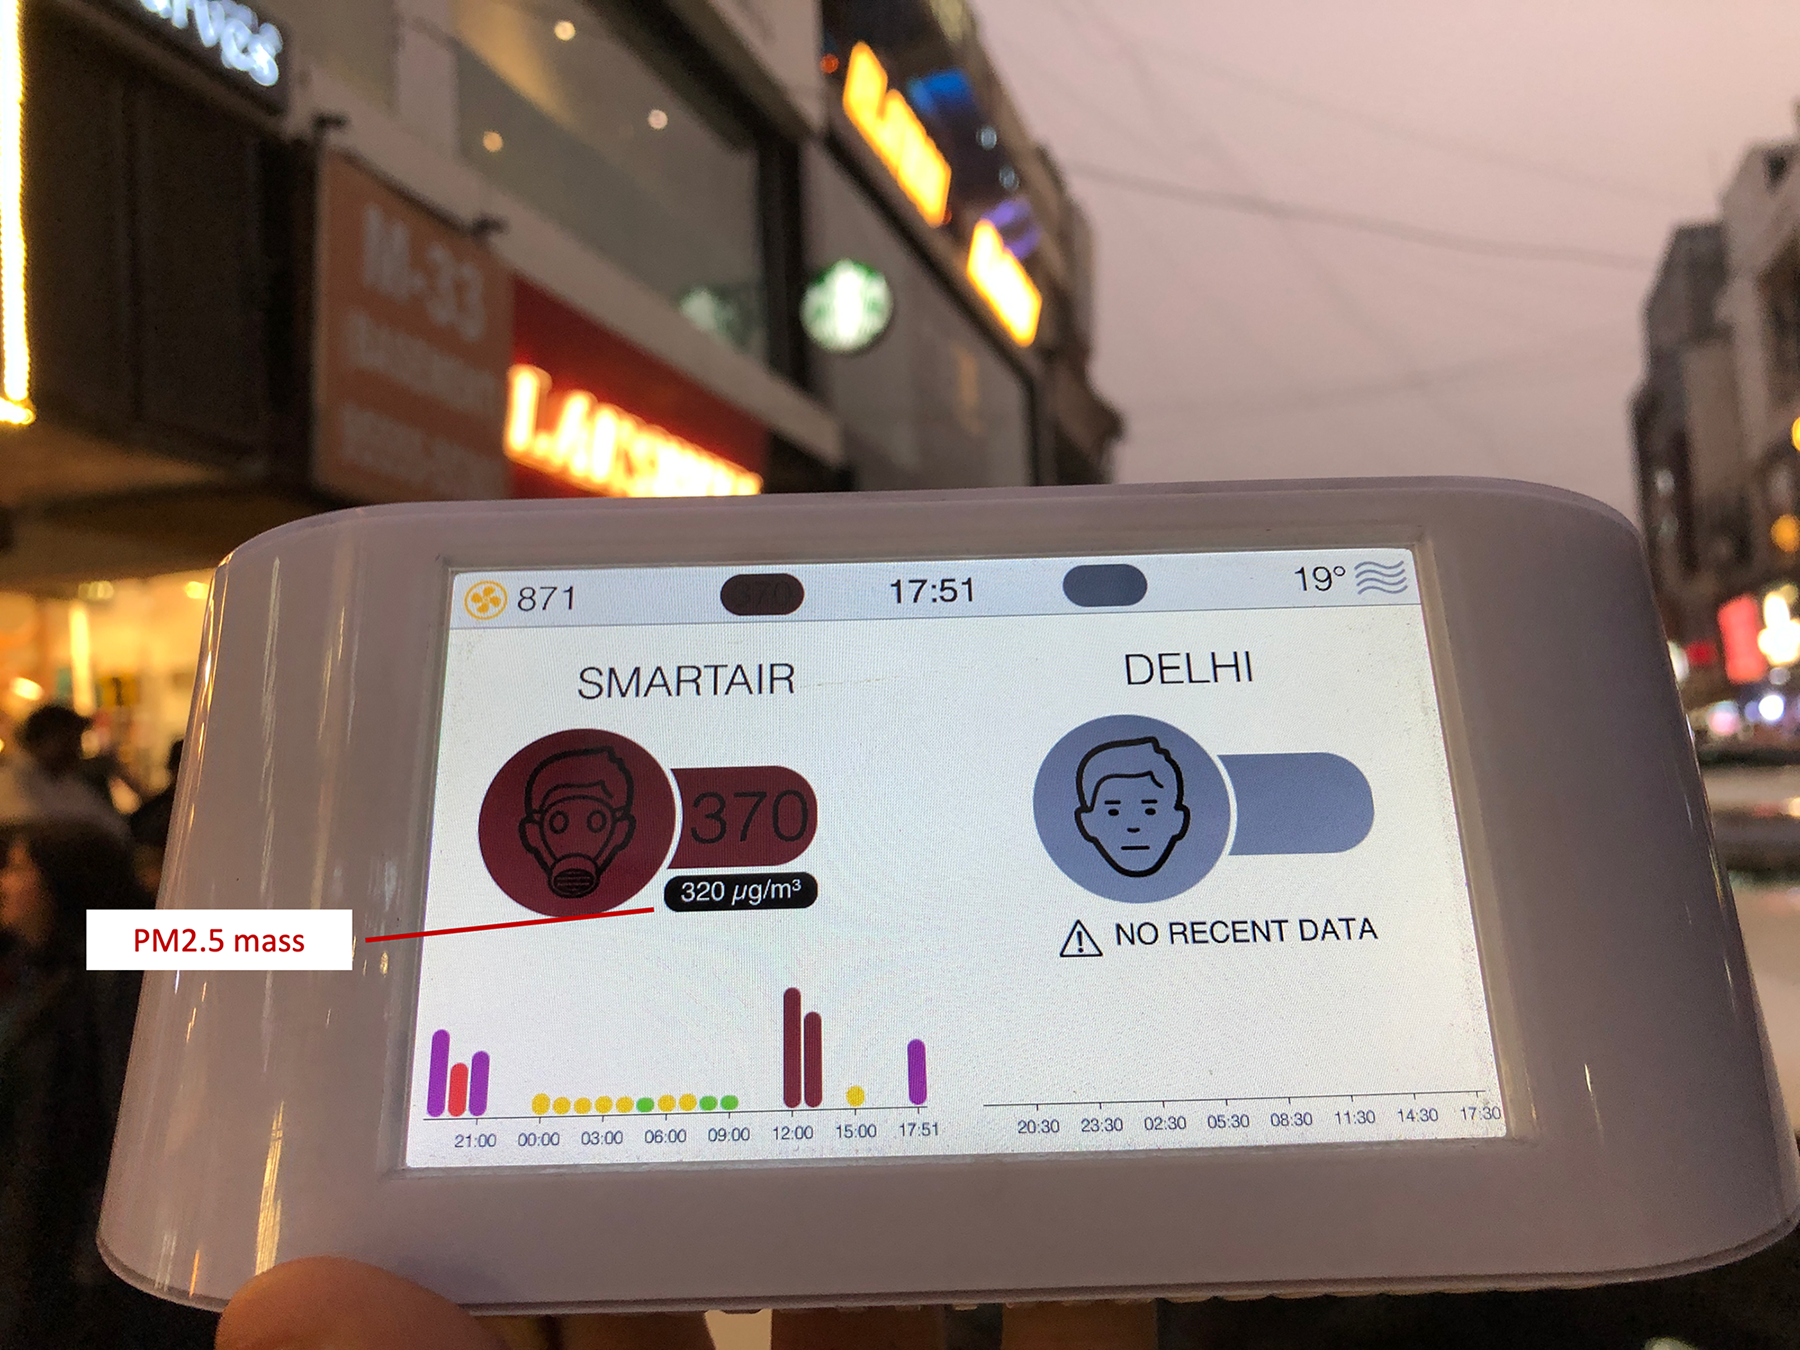 Greater Kailish, Delhi outdoor air PM2.5 pollution